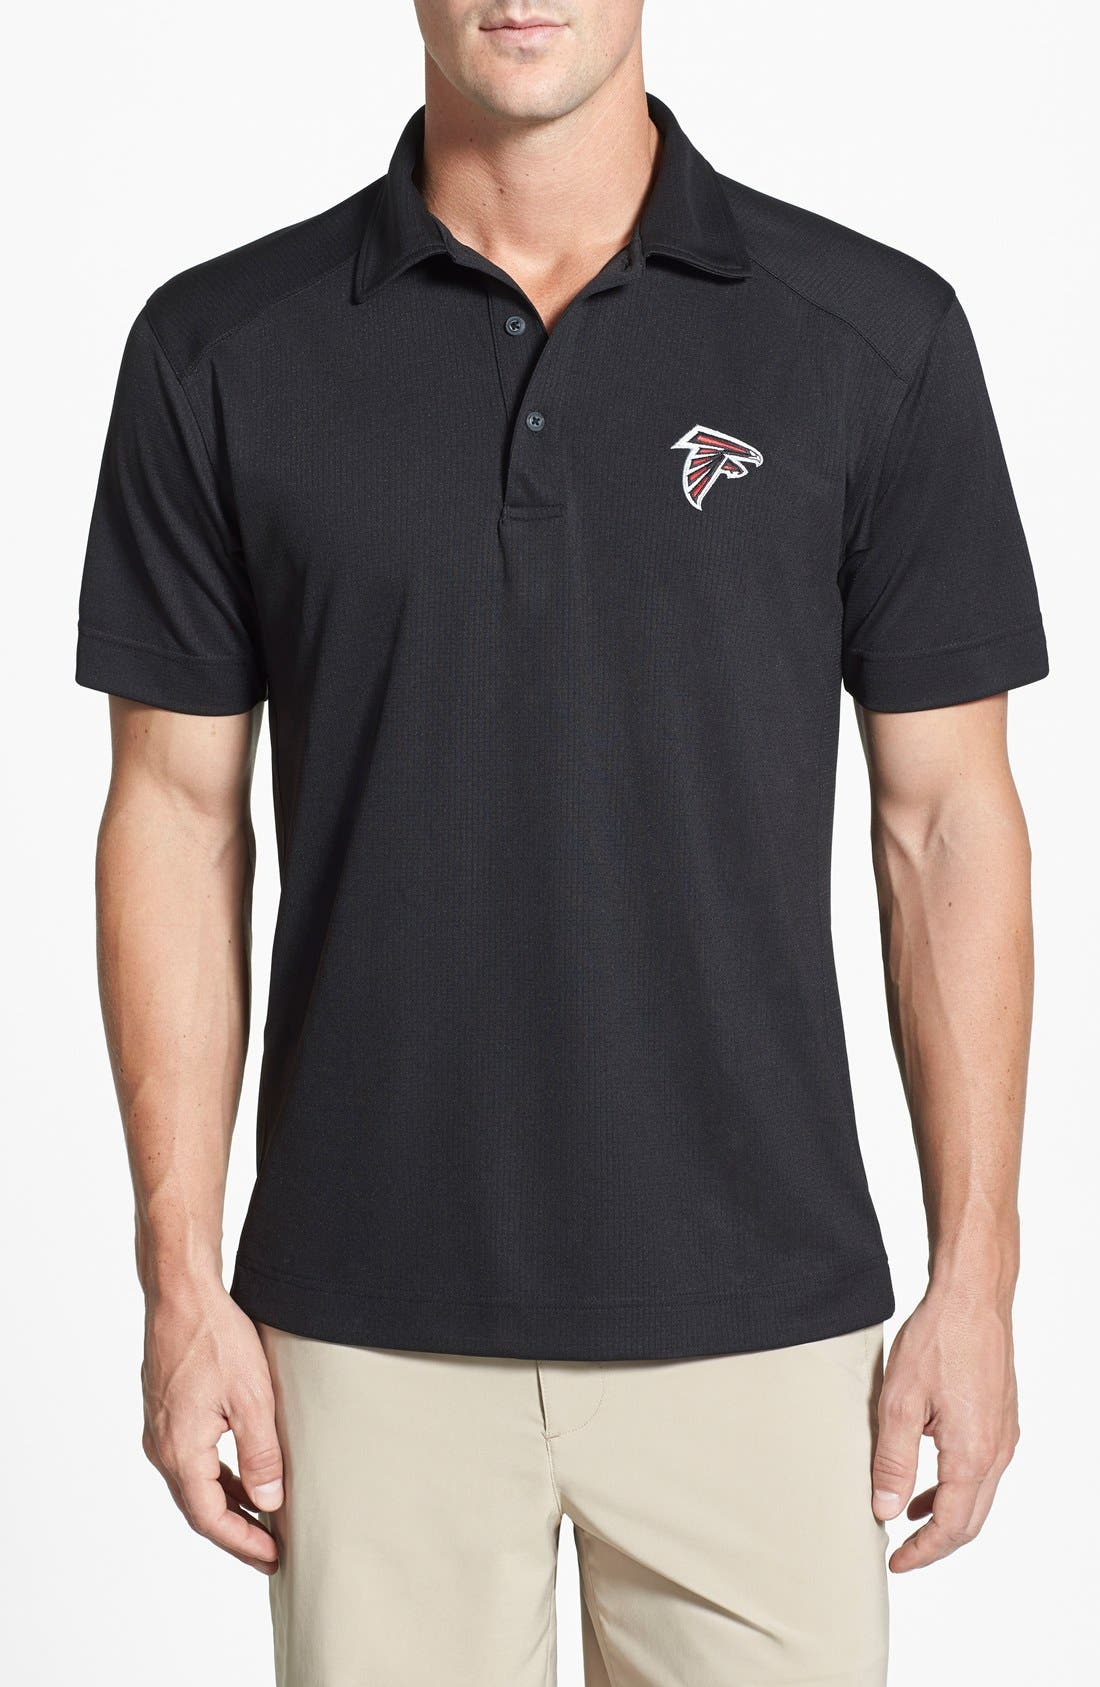 Atlanta Falcons - Genre DryTec Moisture Wicking Polo,                             Main thumbnail 1, color,                             001